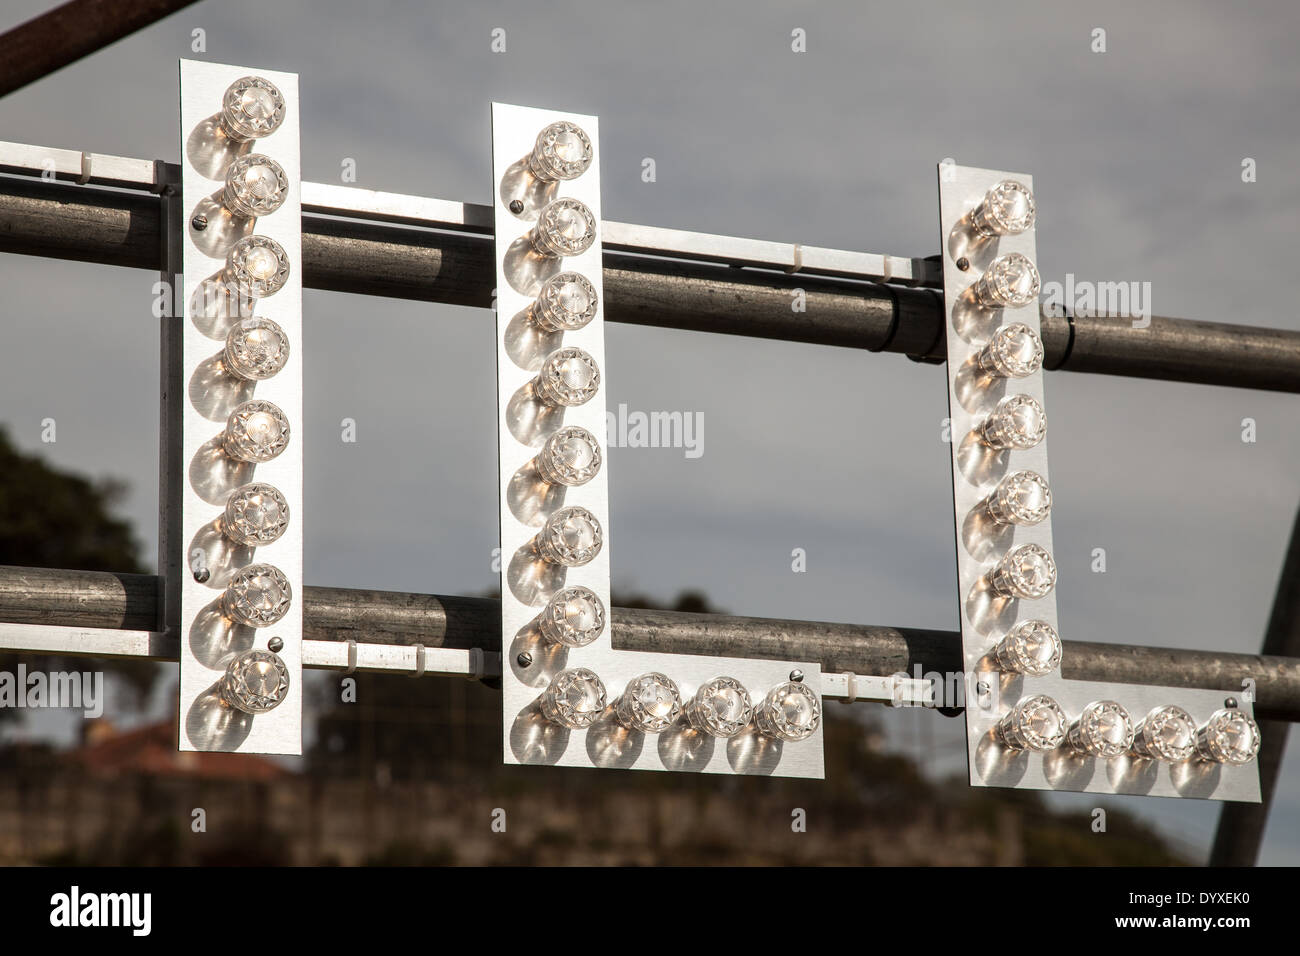 Part of an artistic installation with letters in lights abstracted to 'ILL' - Stock Image